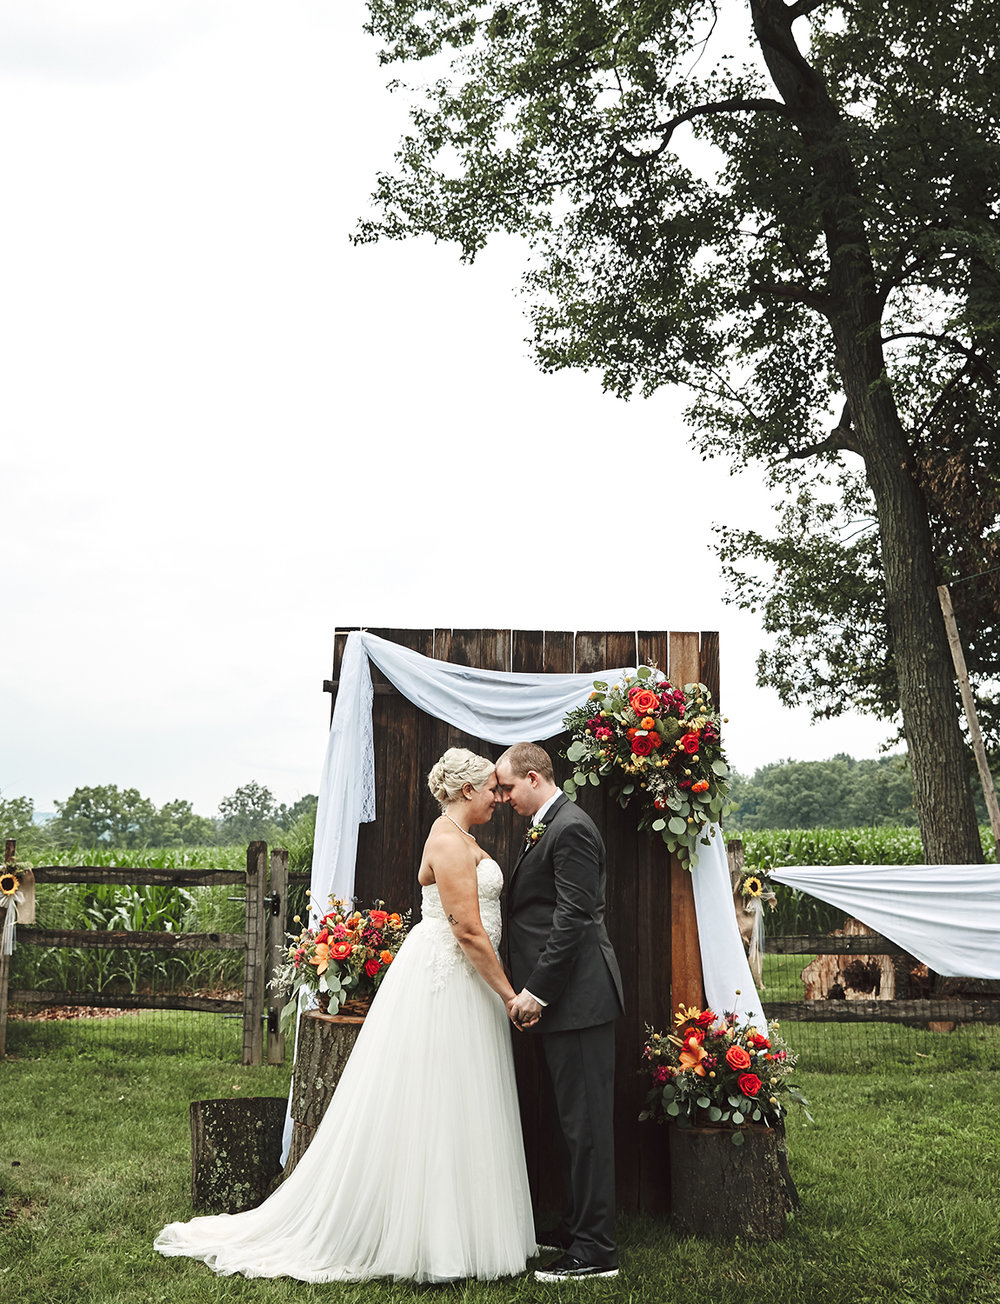 170722_Pennsylvania_RusticBackyardWedding_By_BriJohnsonWeddings_0063.jpg